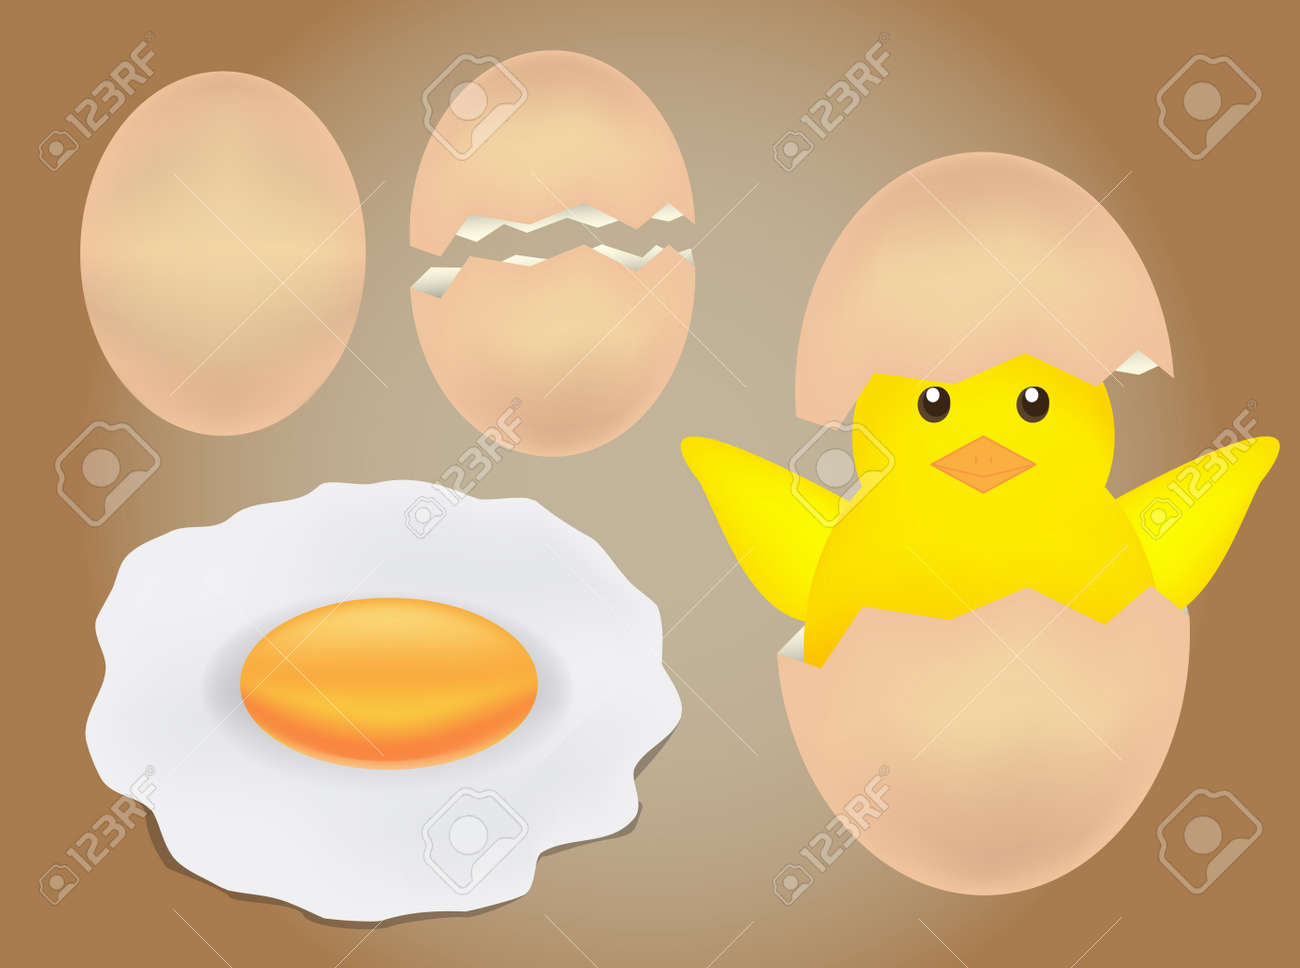 Egg and chick vector - 54461911